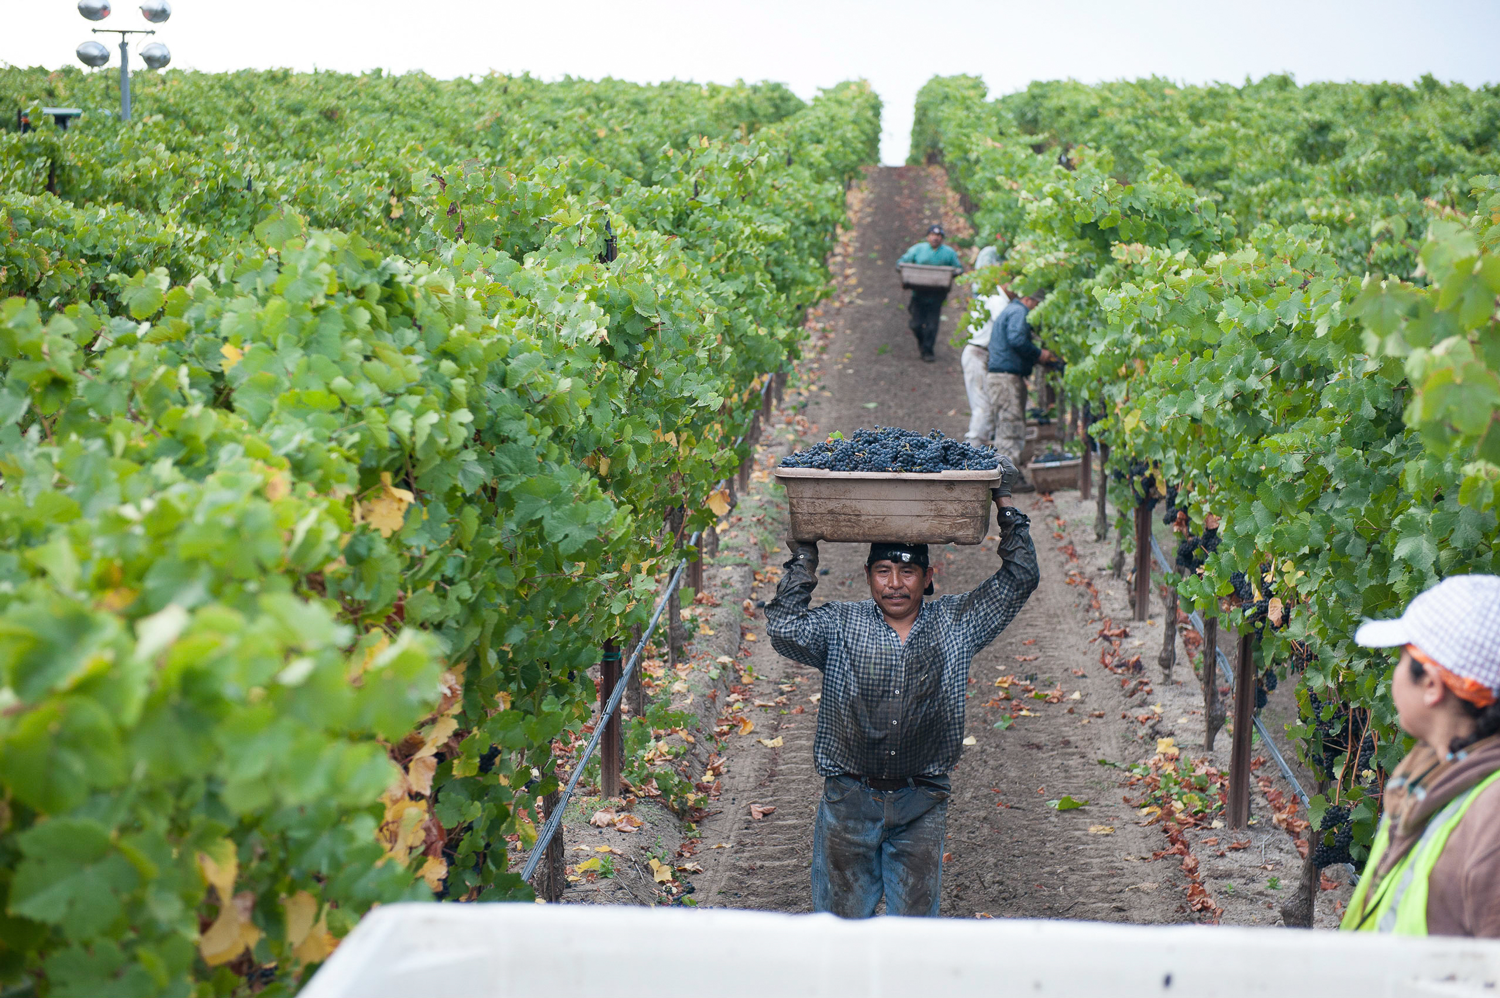 Harvest_Worker_Carrying_Bin_of_Grapes_durng_harvest.png